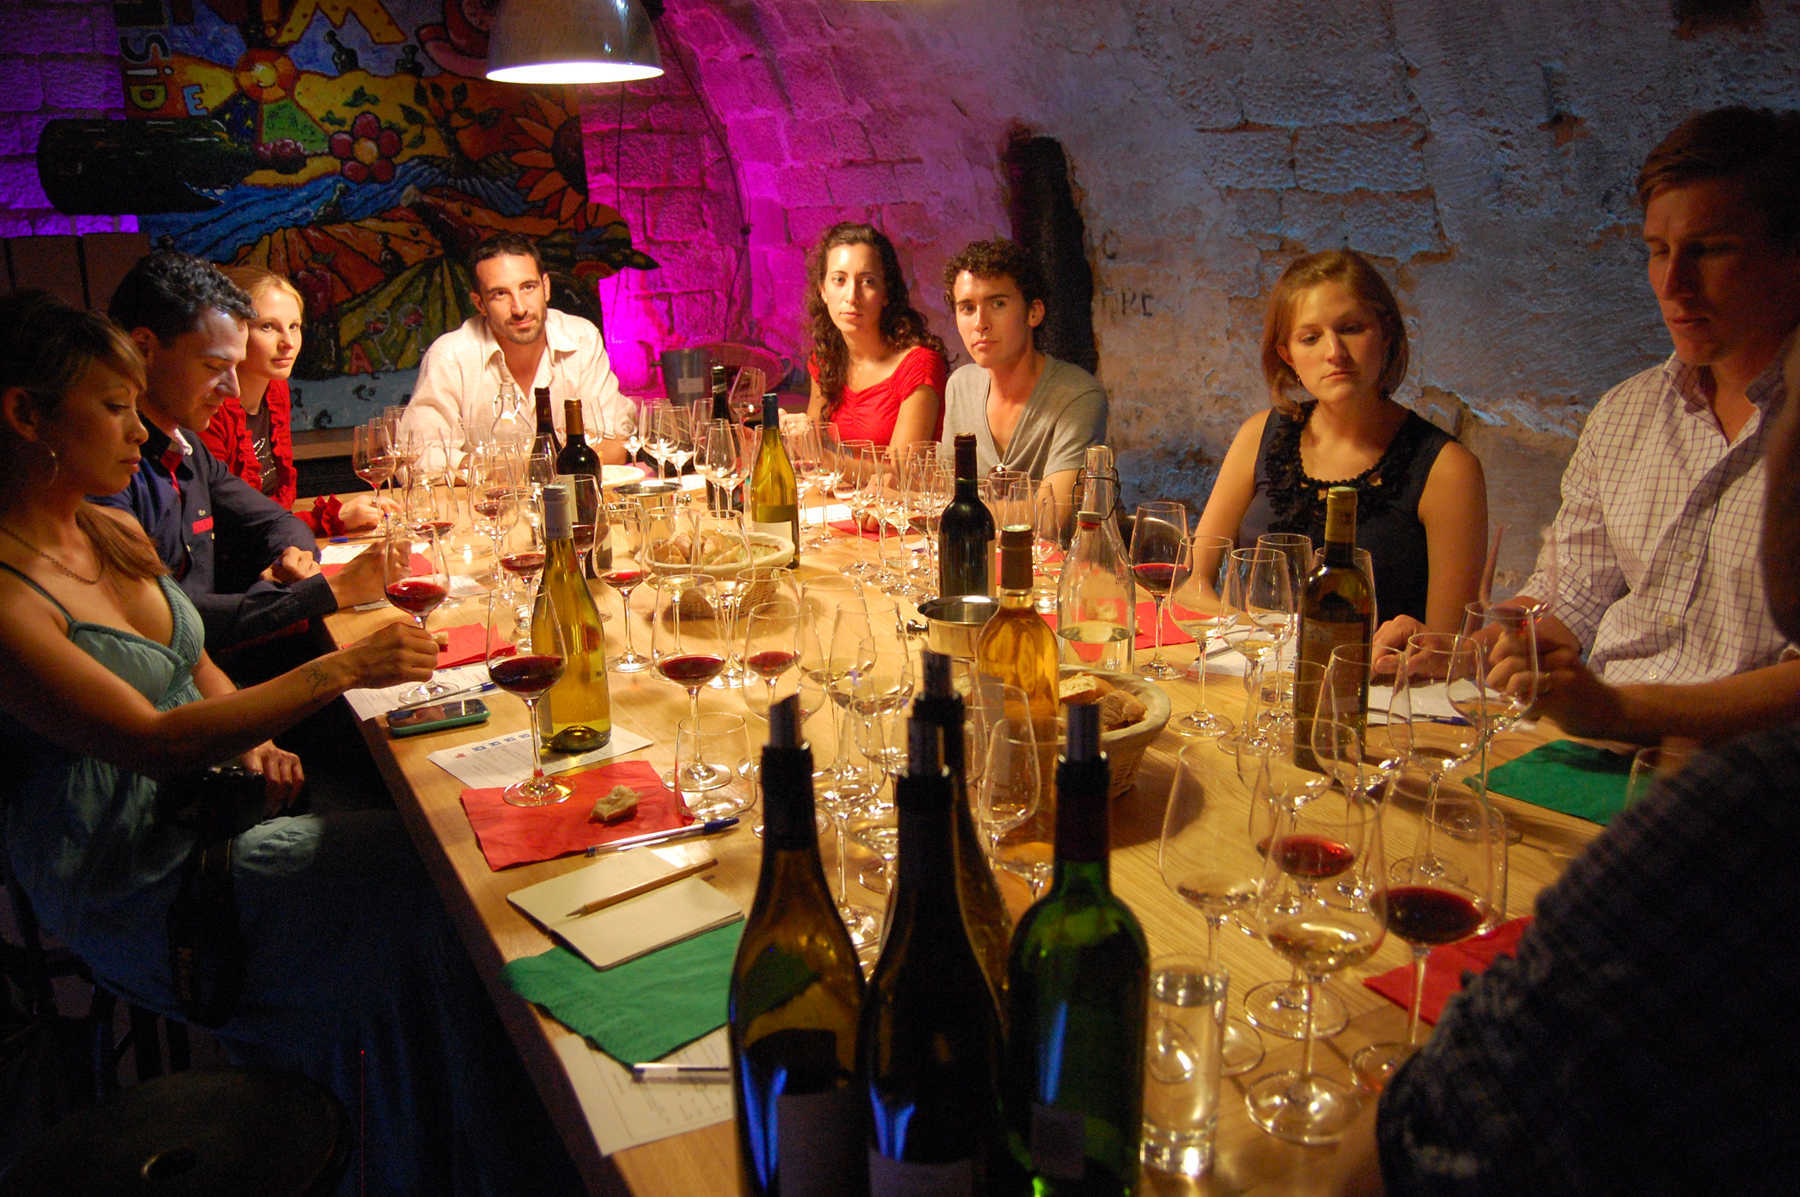 Wine Tasting Group, Paris, France